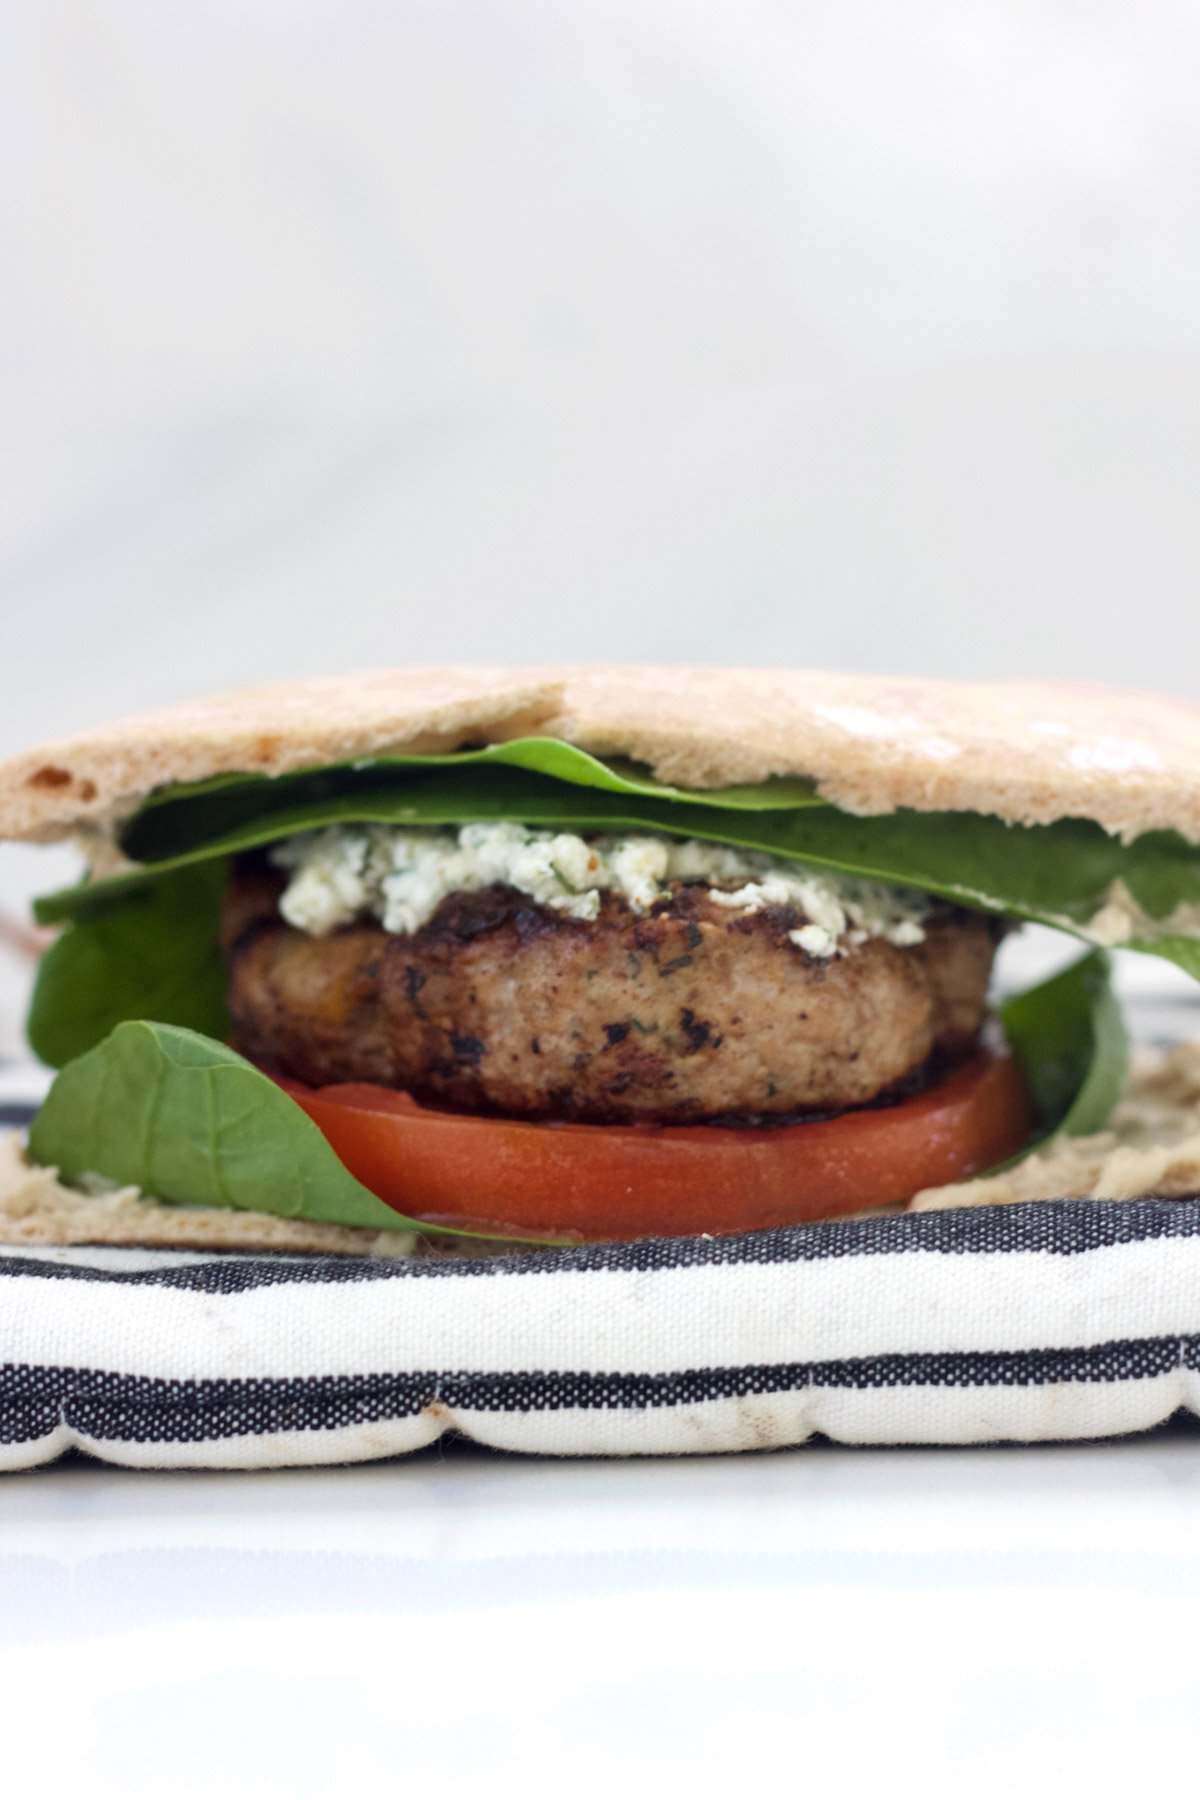 Turkey burger with herbed feta, spinach, tomato and hummus